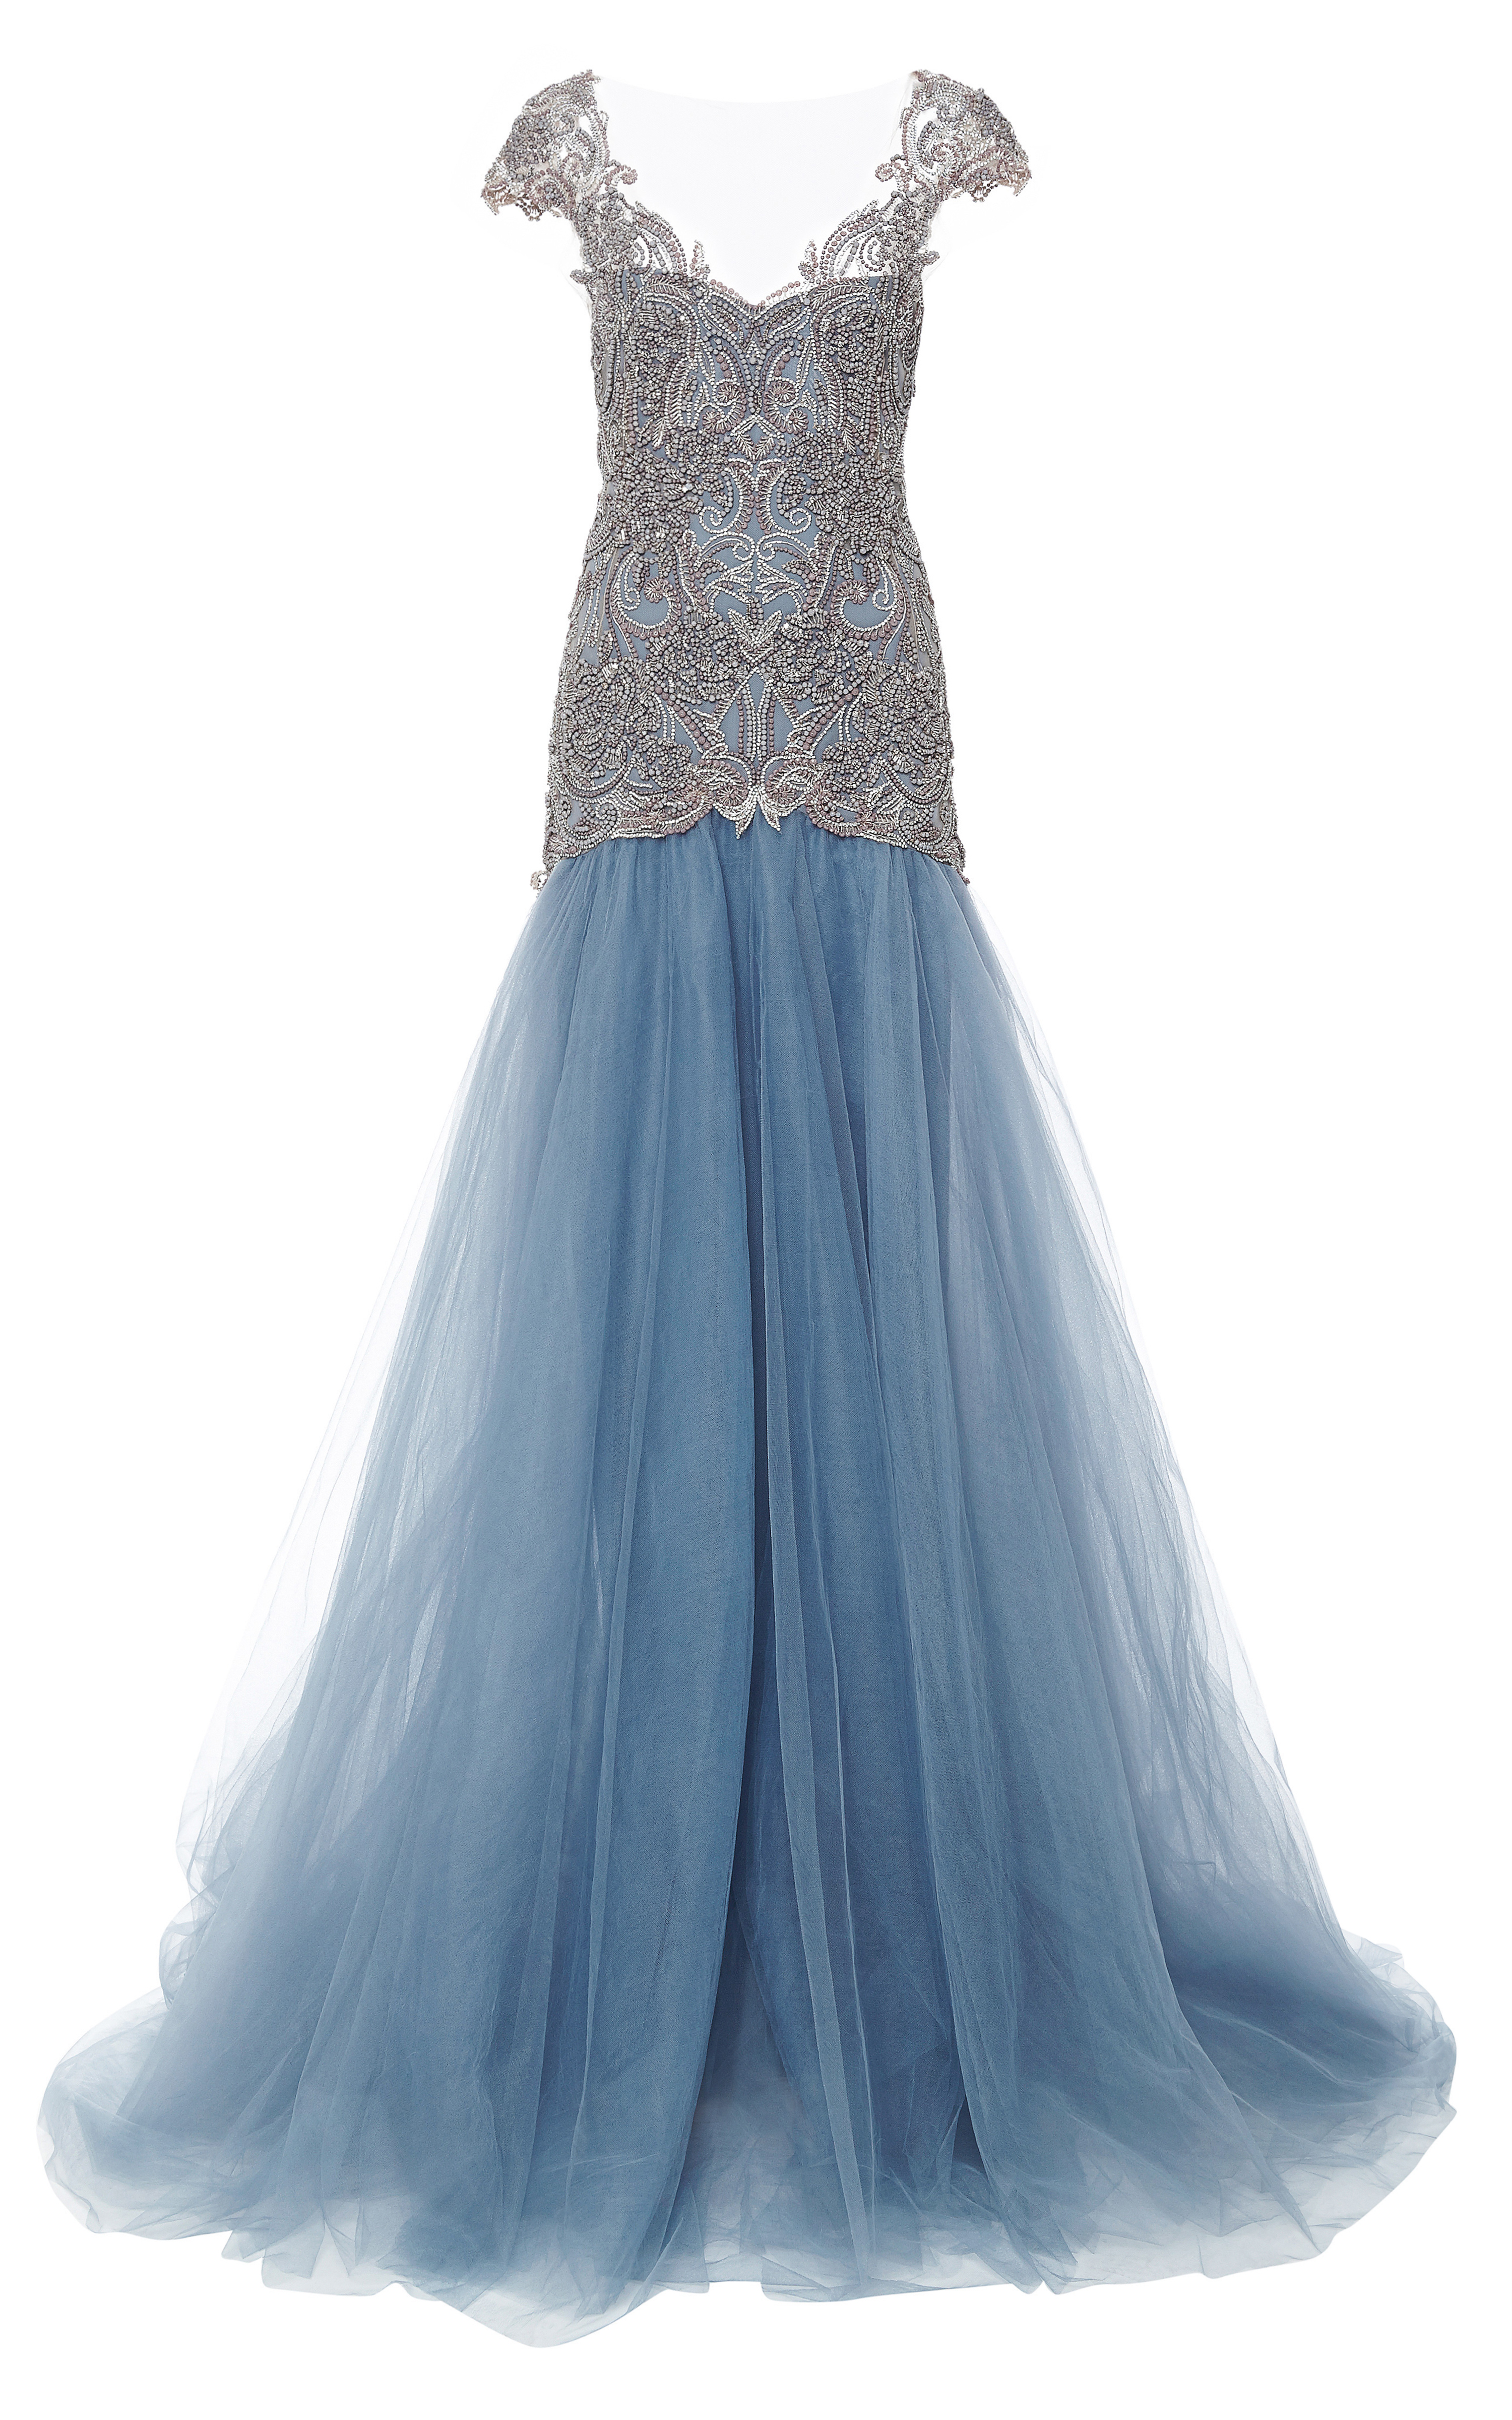 Lyst - Marchesa Embroidered Drop Waist Ball Gown in Blue